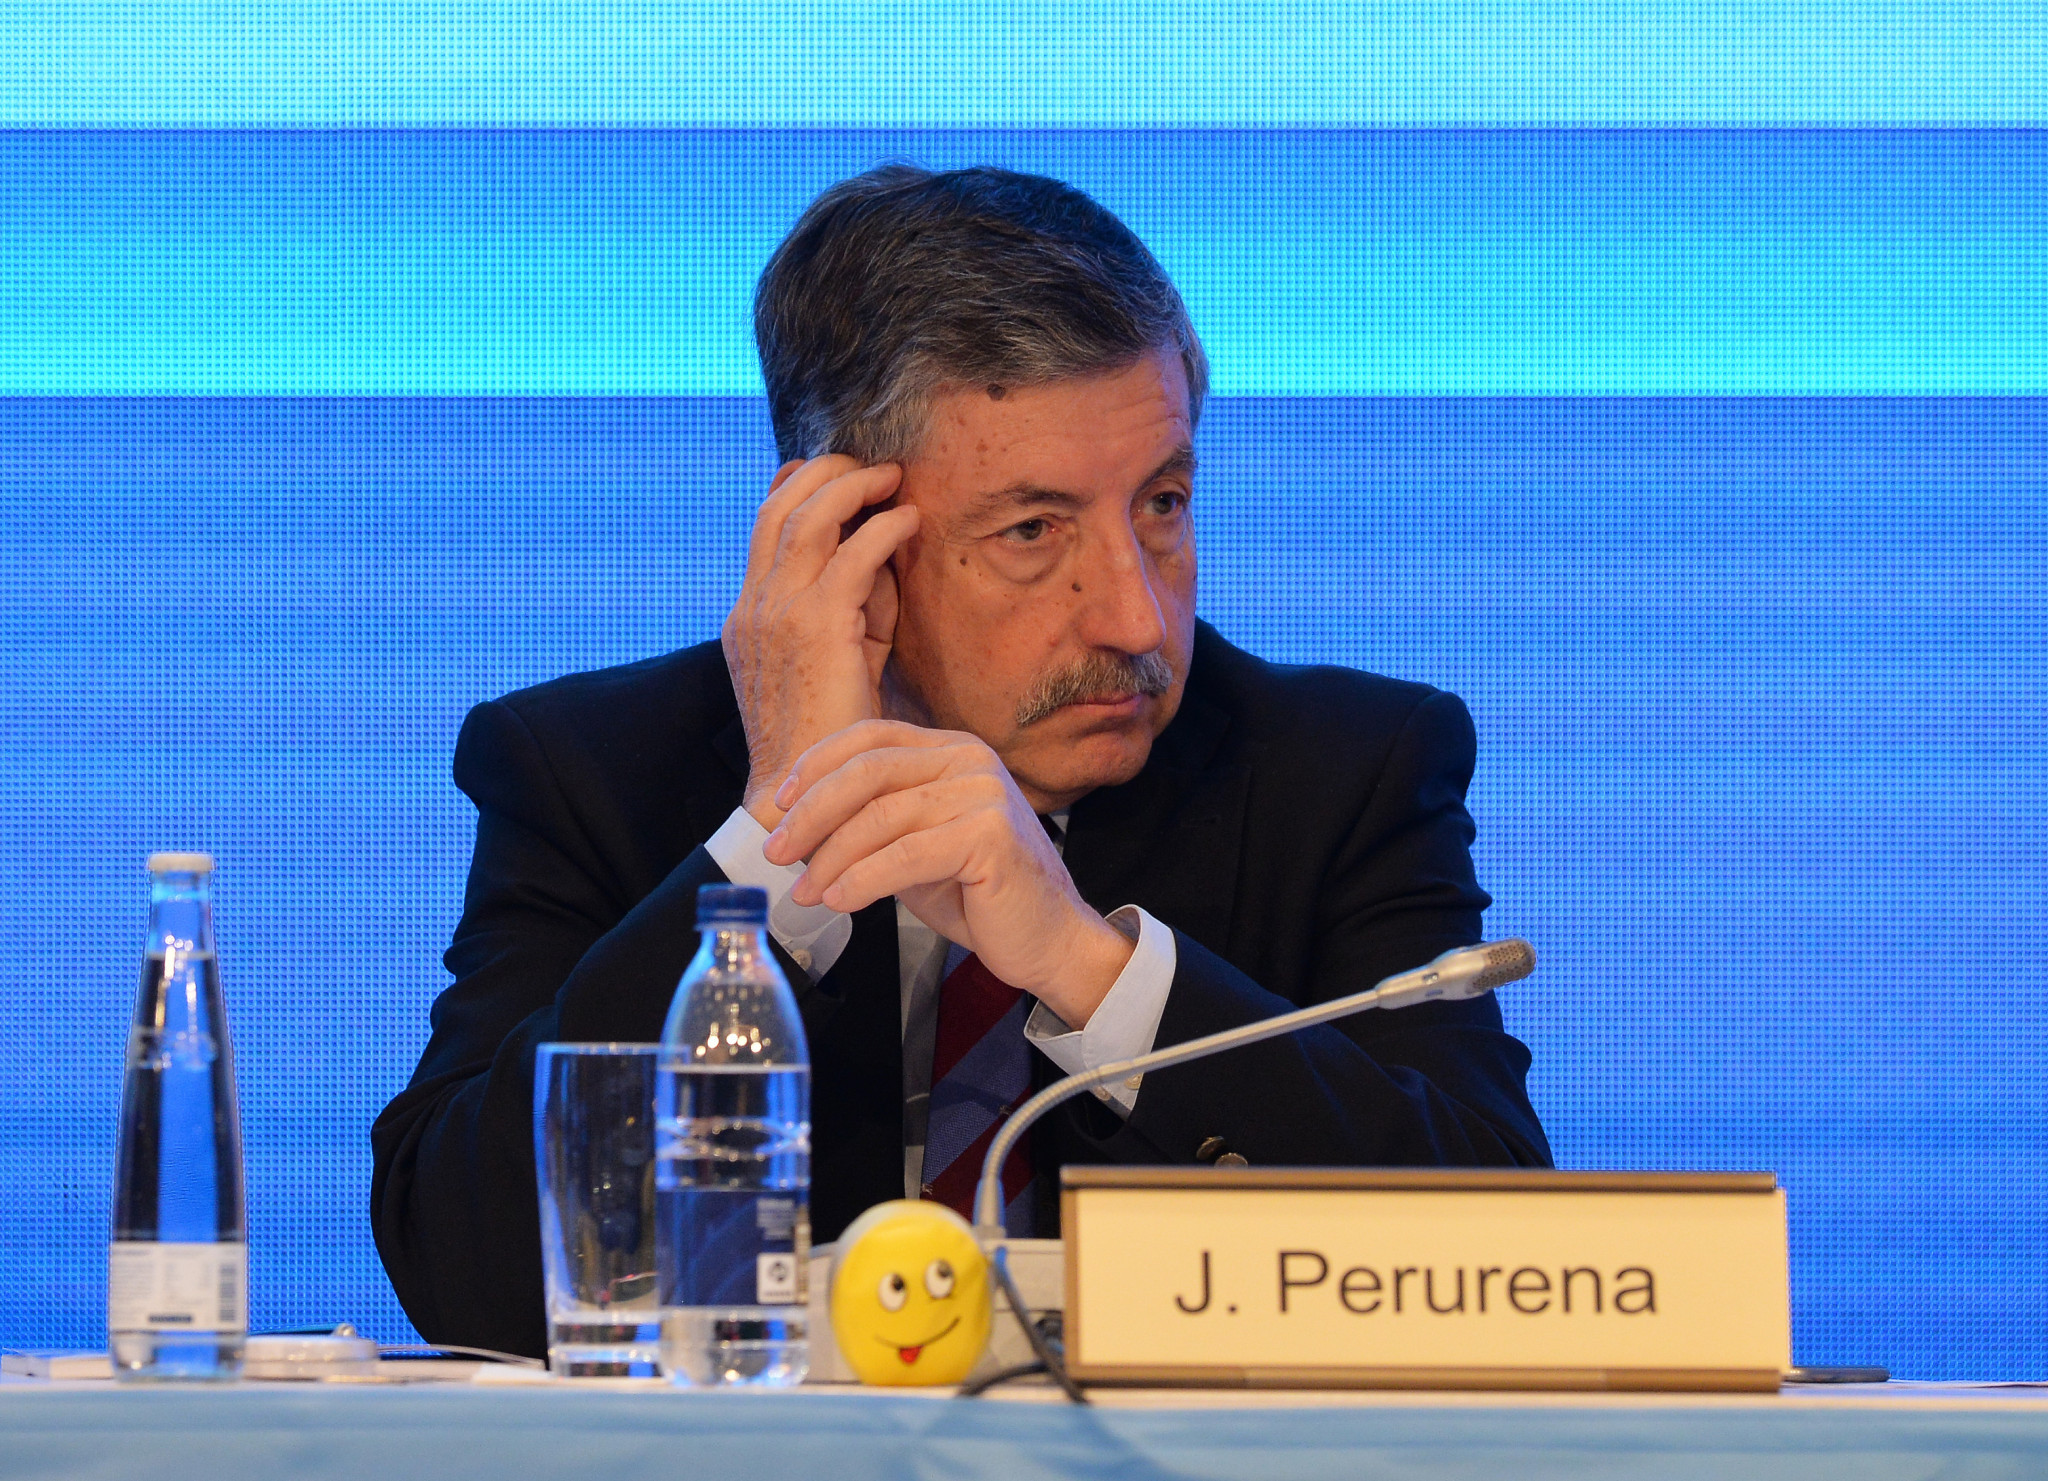 José Perurena looks set to continue in his role as IWGA President ©Getty Images